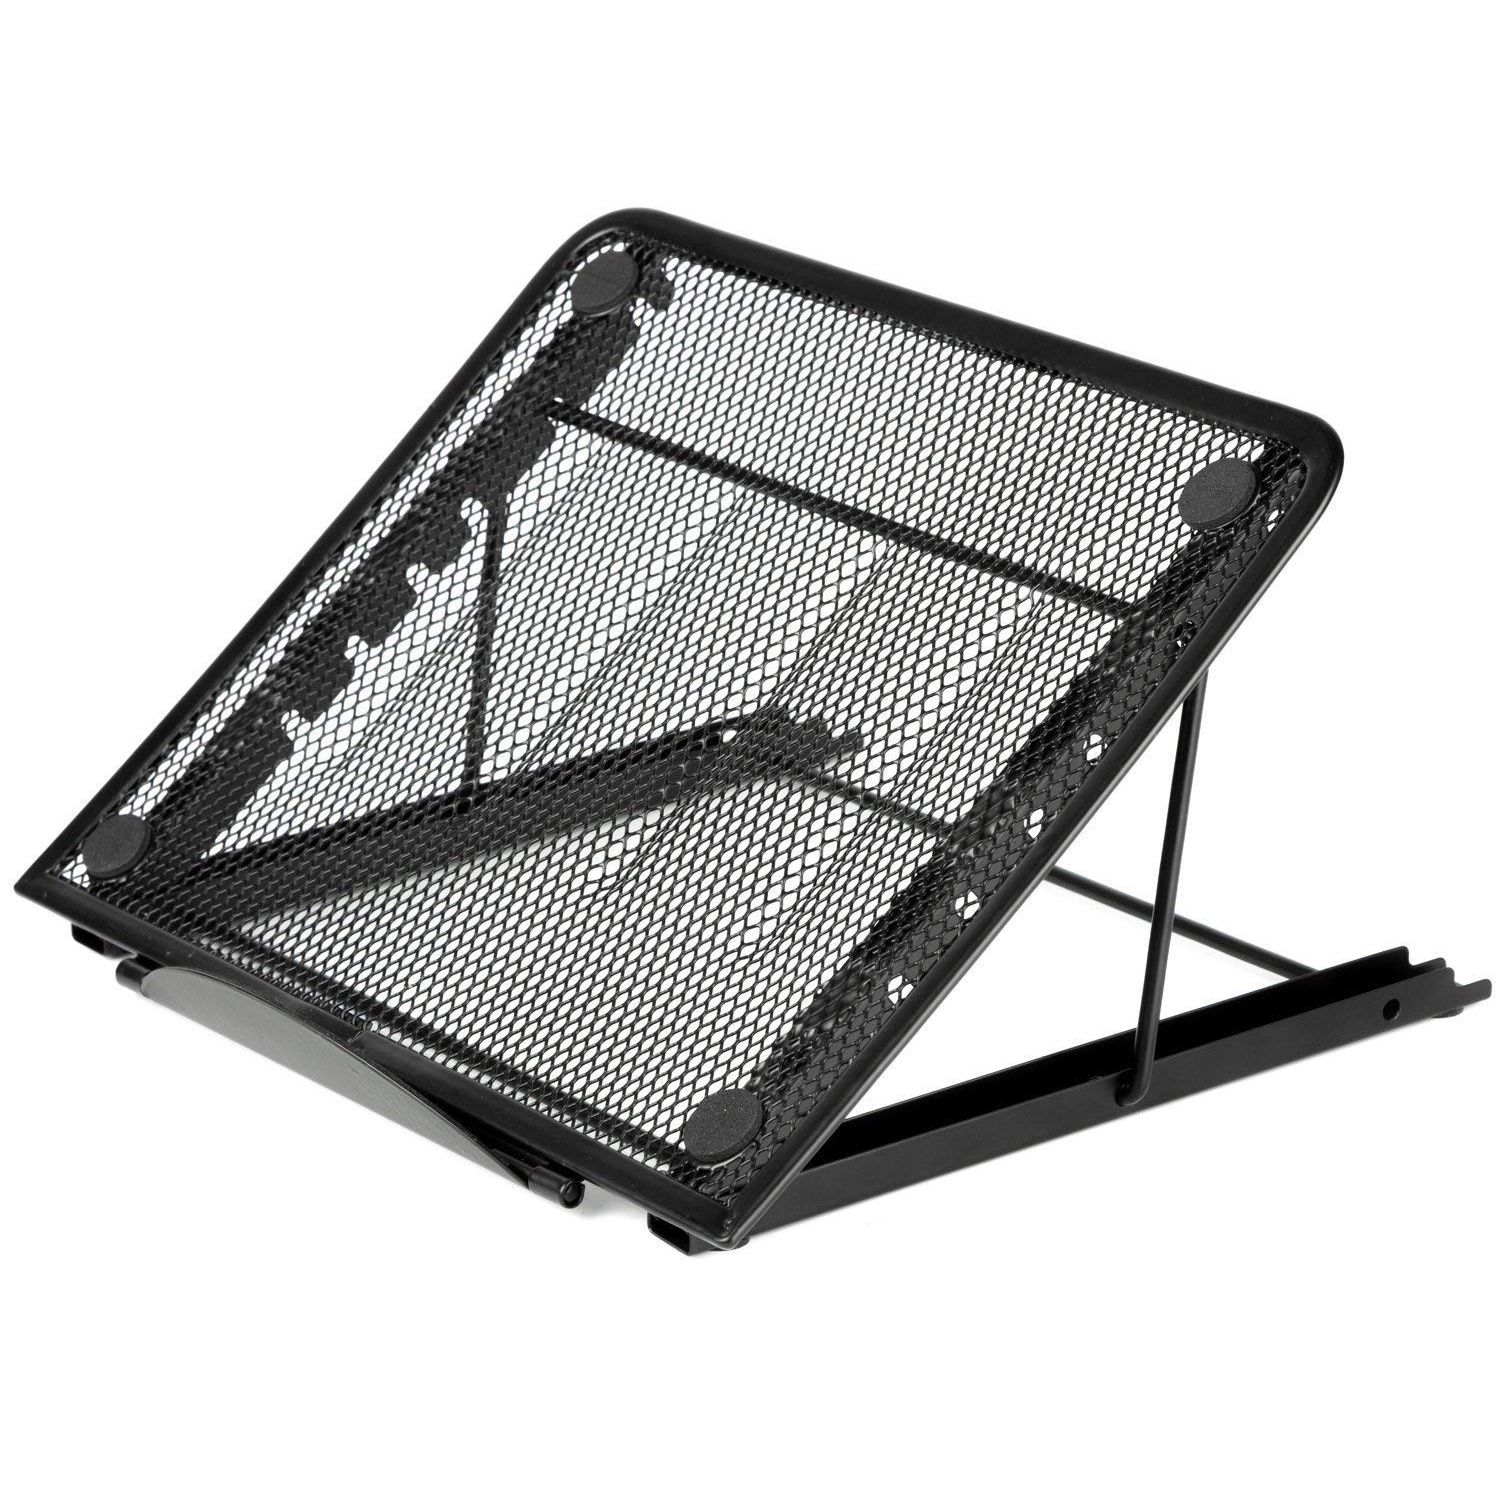 Mesh Ventilated Adjustable Laptop Stand for Laptop/Notebook /Tablet and more (Black) malerba кресло black and more